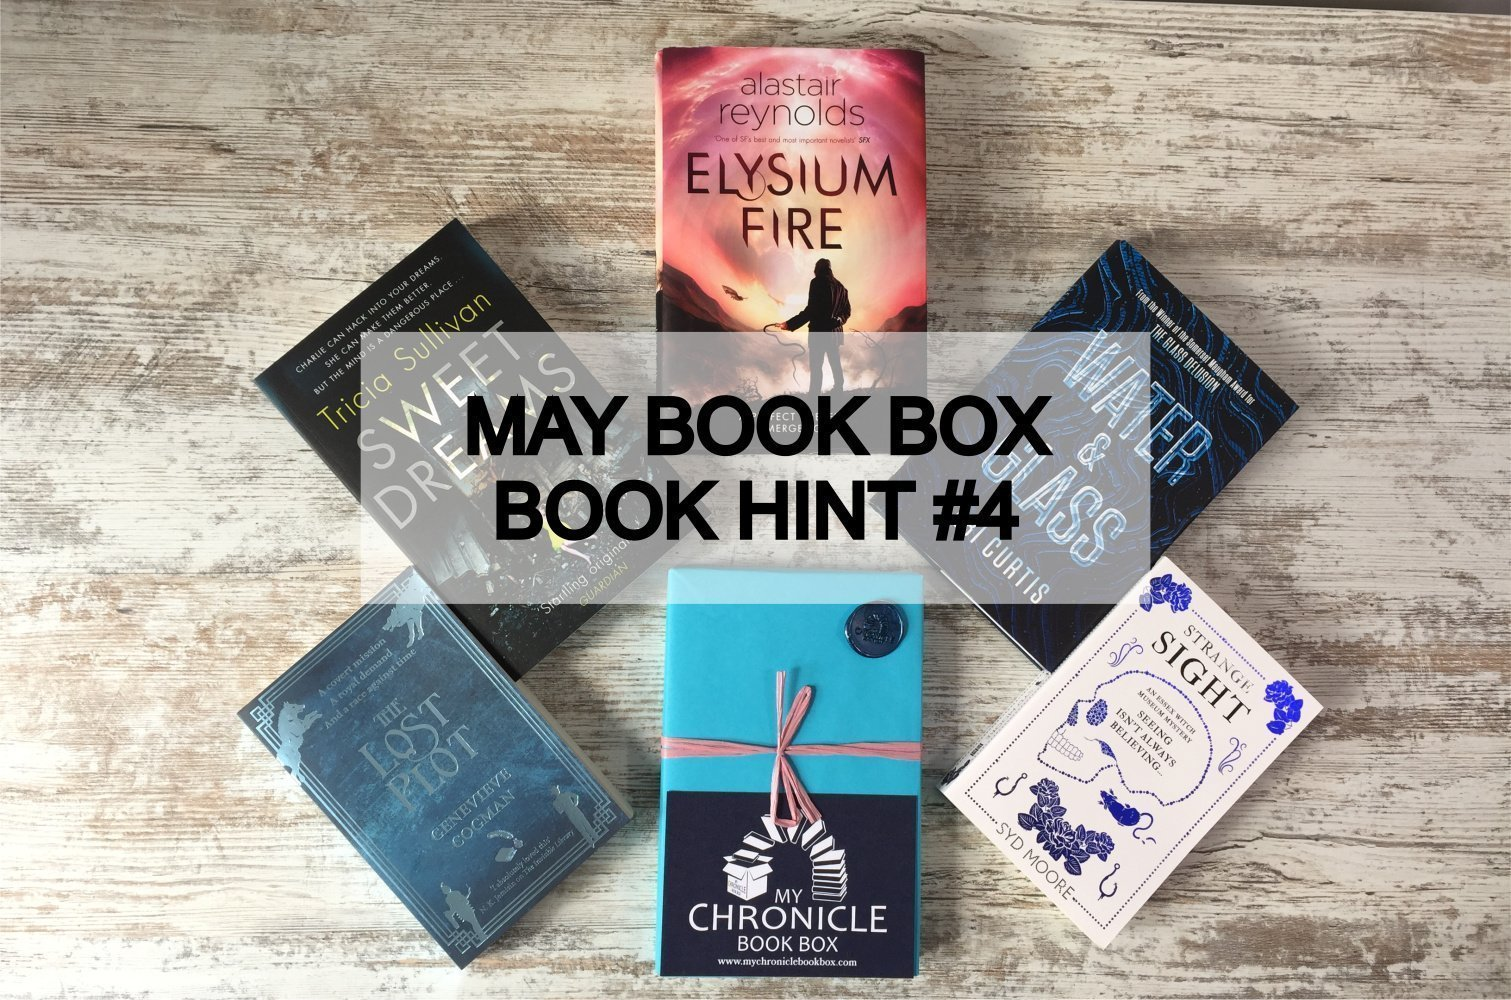 May book box book hint 4